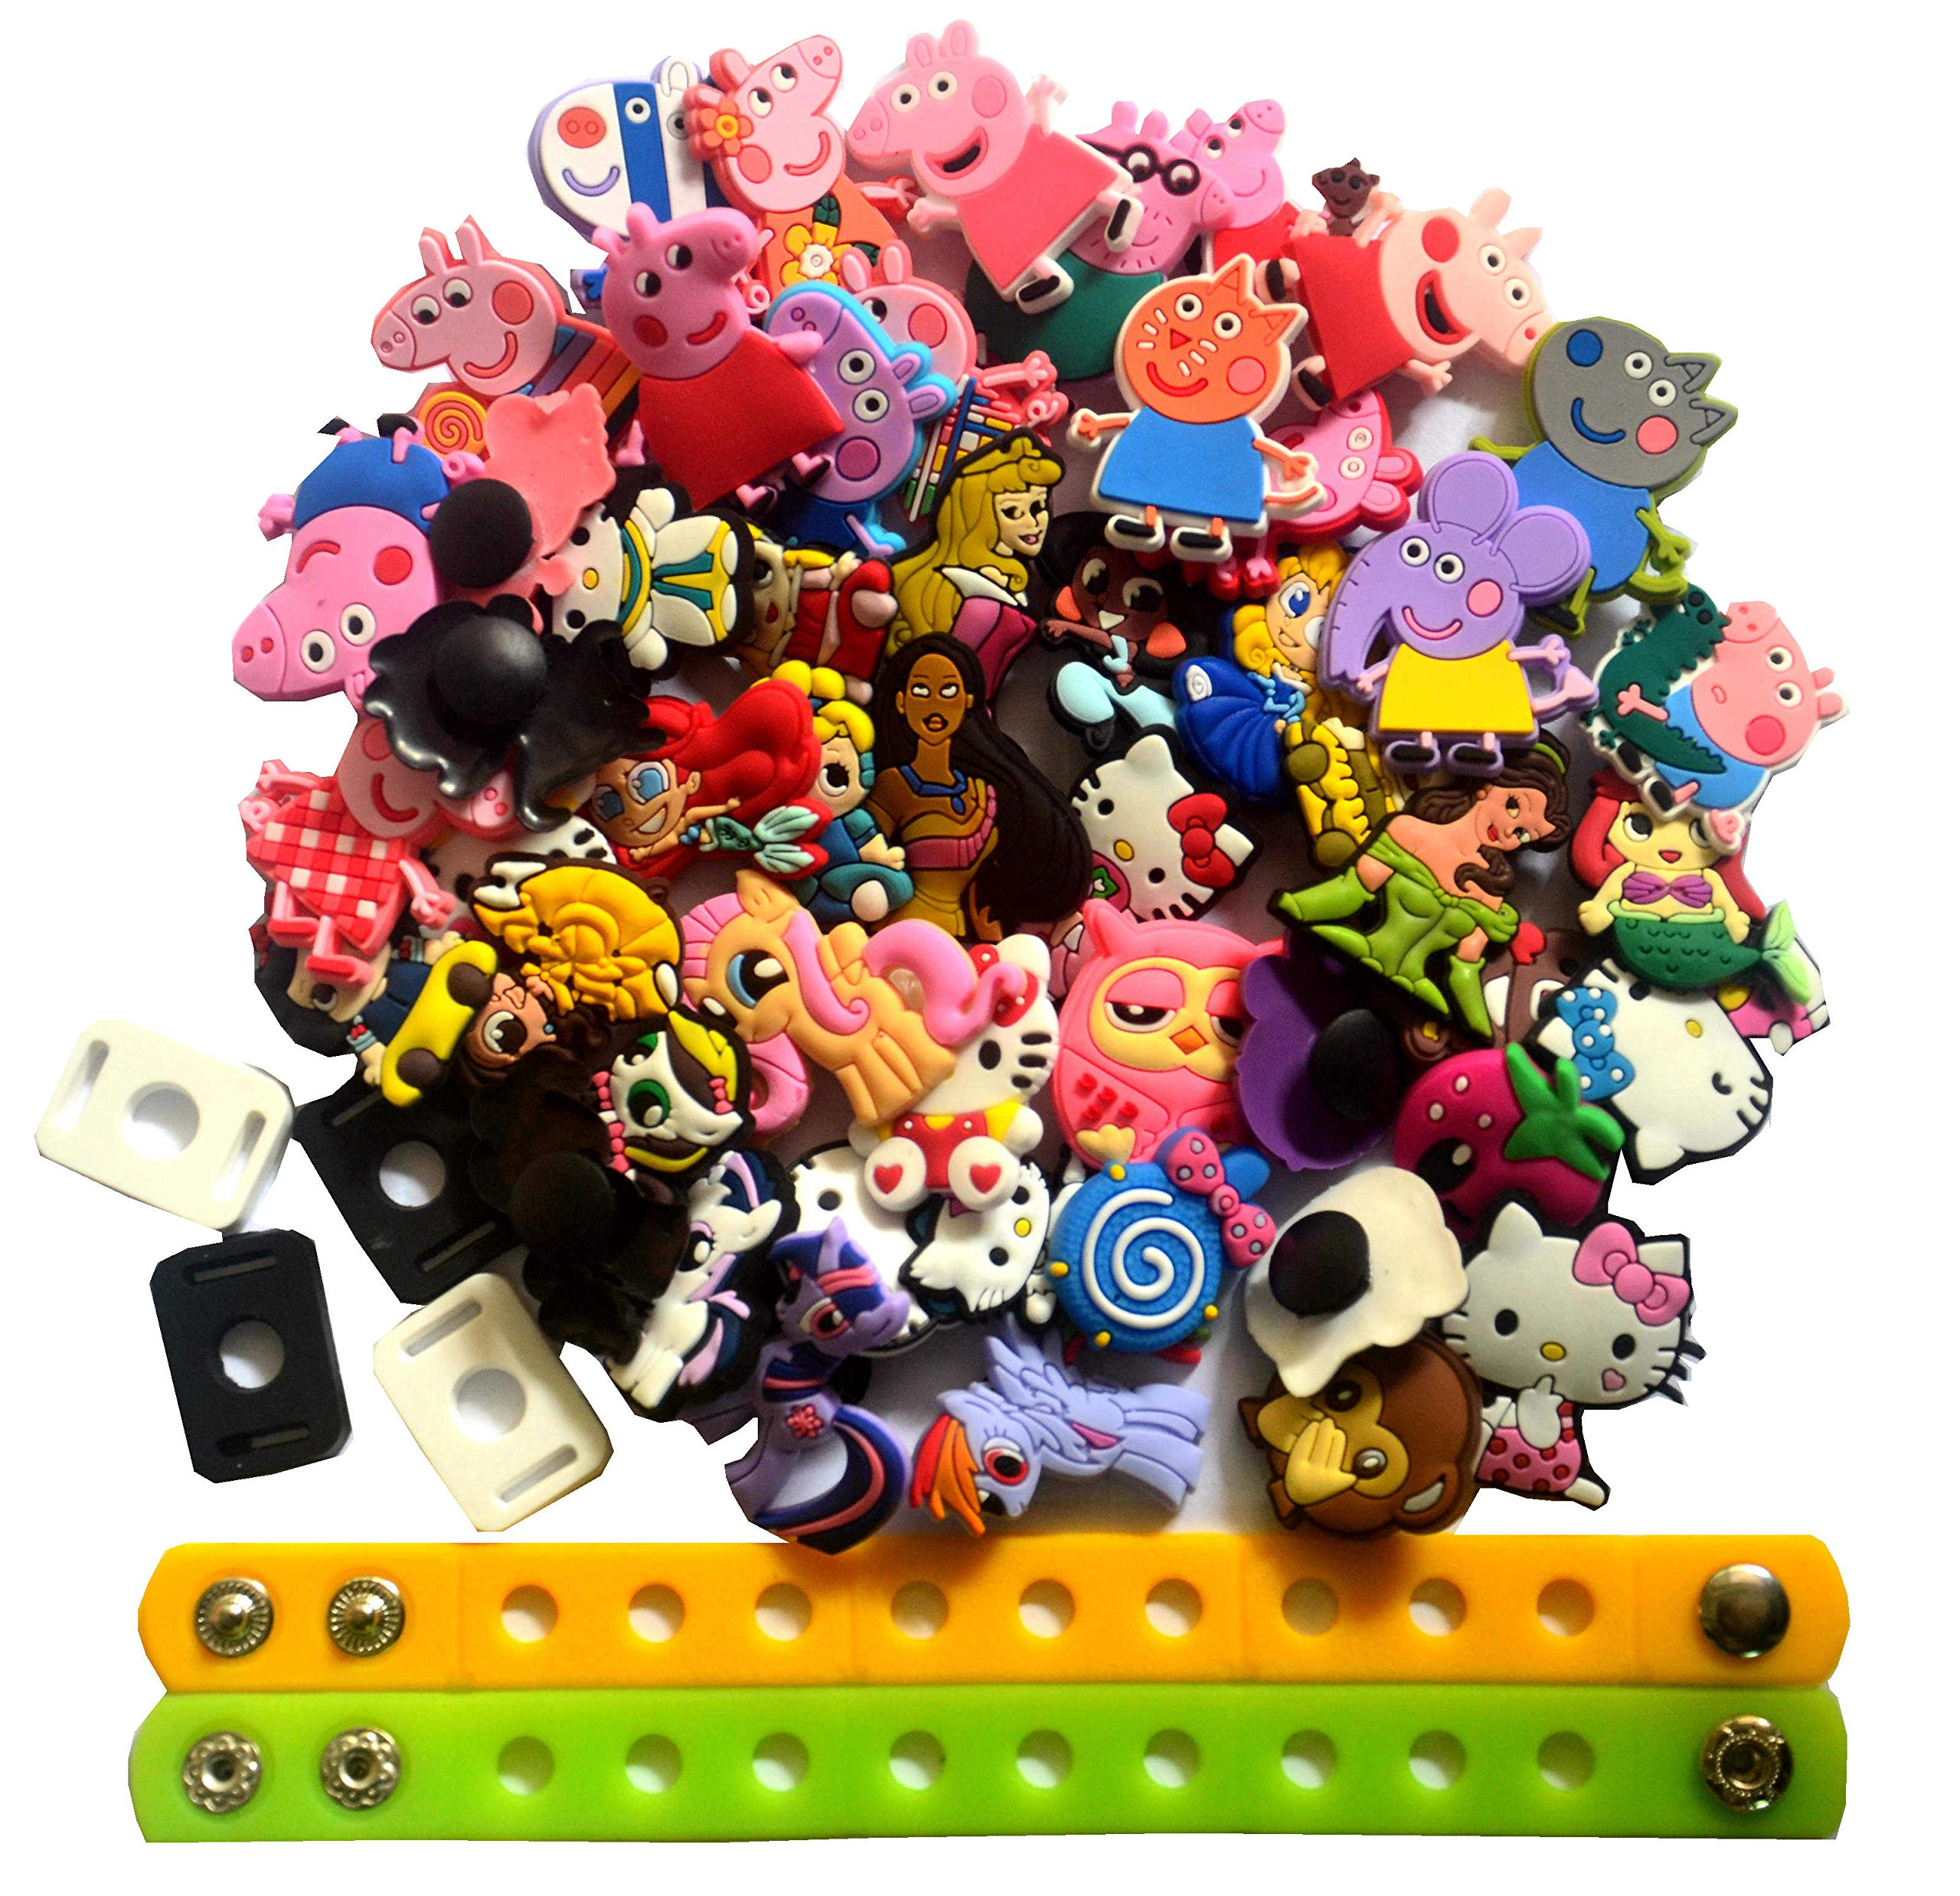 a17c6d238 Get Quotations · Lot of 52 PVC Different Shoe Charms for Croc   Jibbitz  Bands Bracelet Wristband for Girls